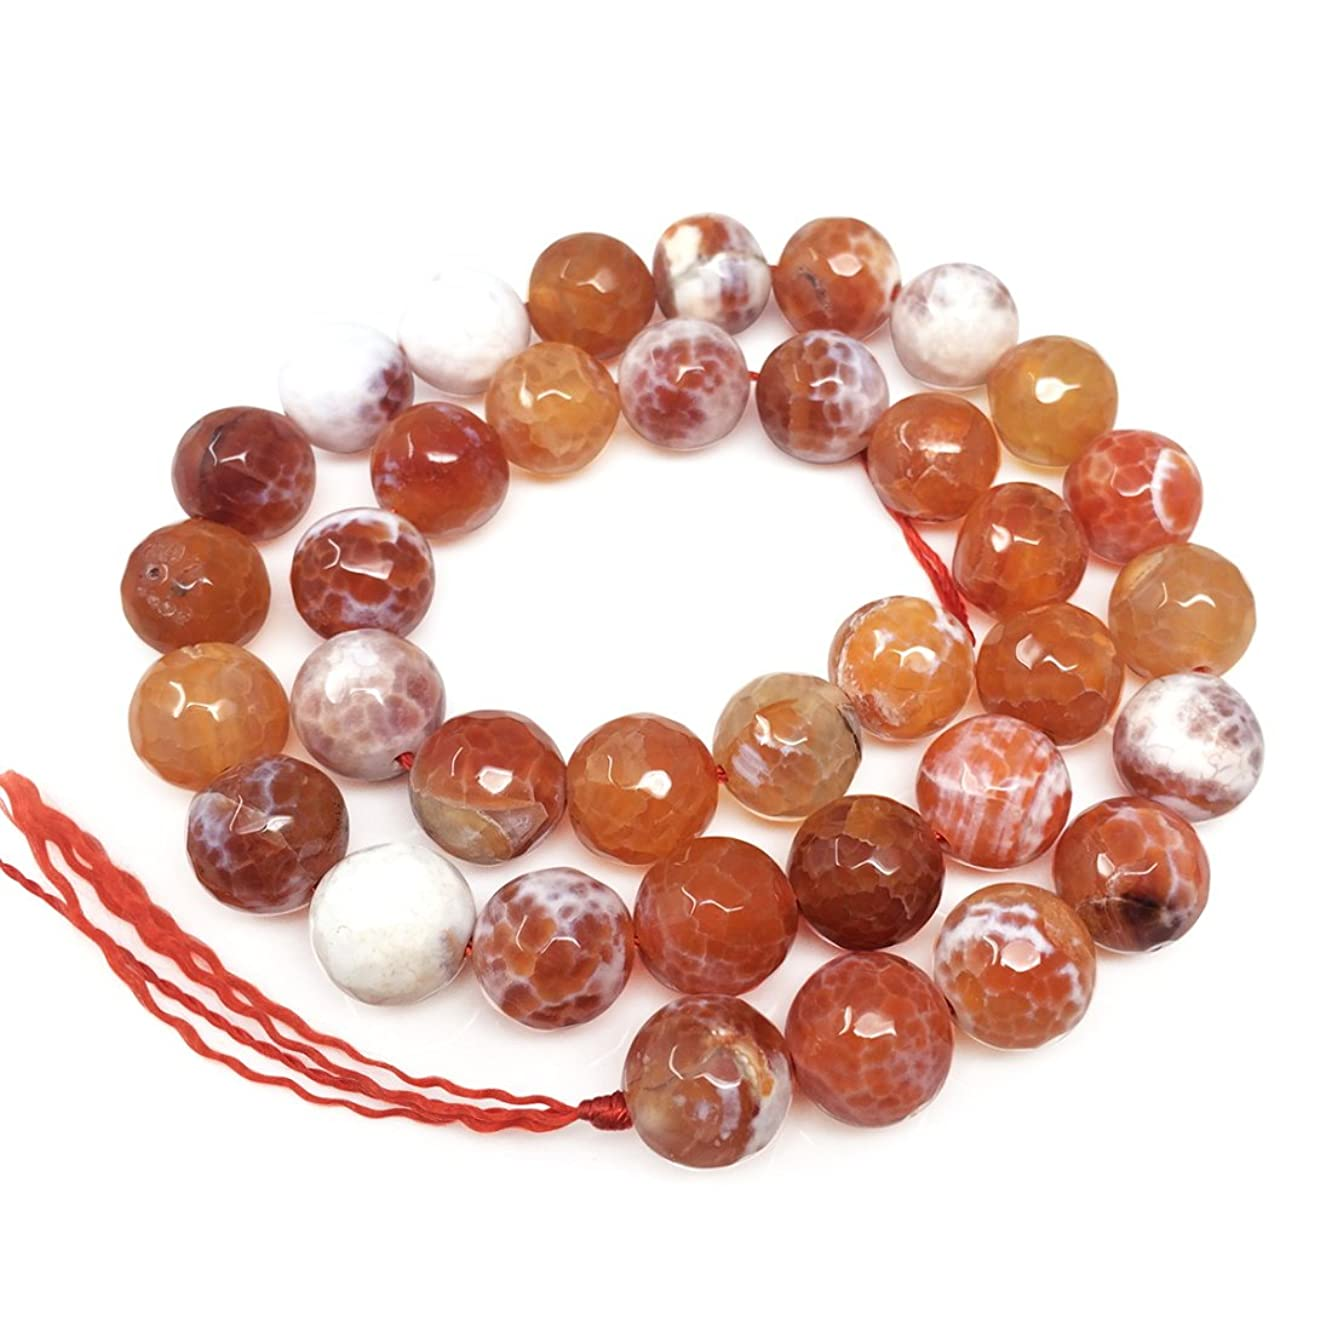 Natural Faceted Red Fire Agate Gemsstone 10mm Round Loose Gems Stone Beads 15.5